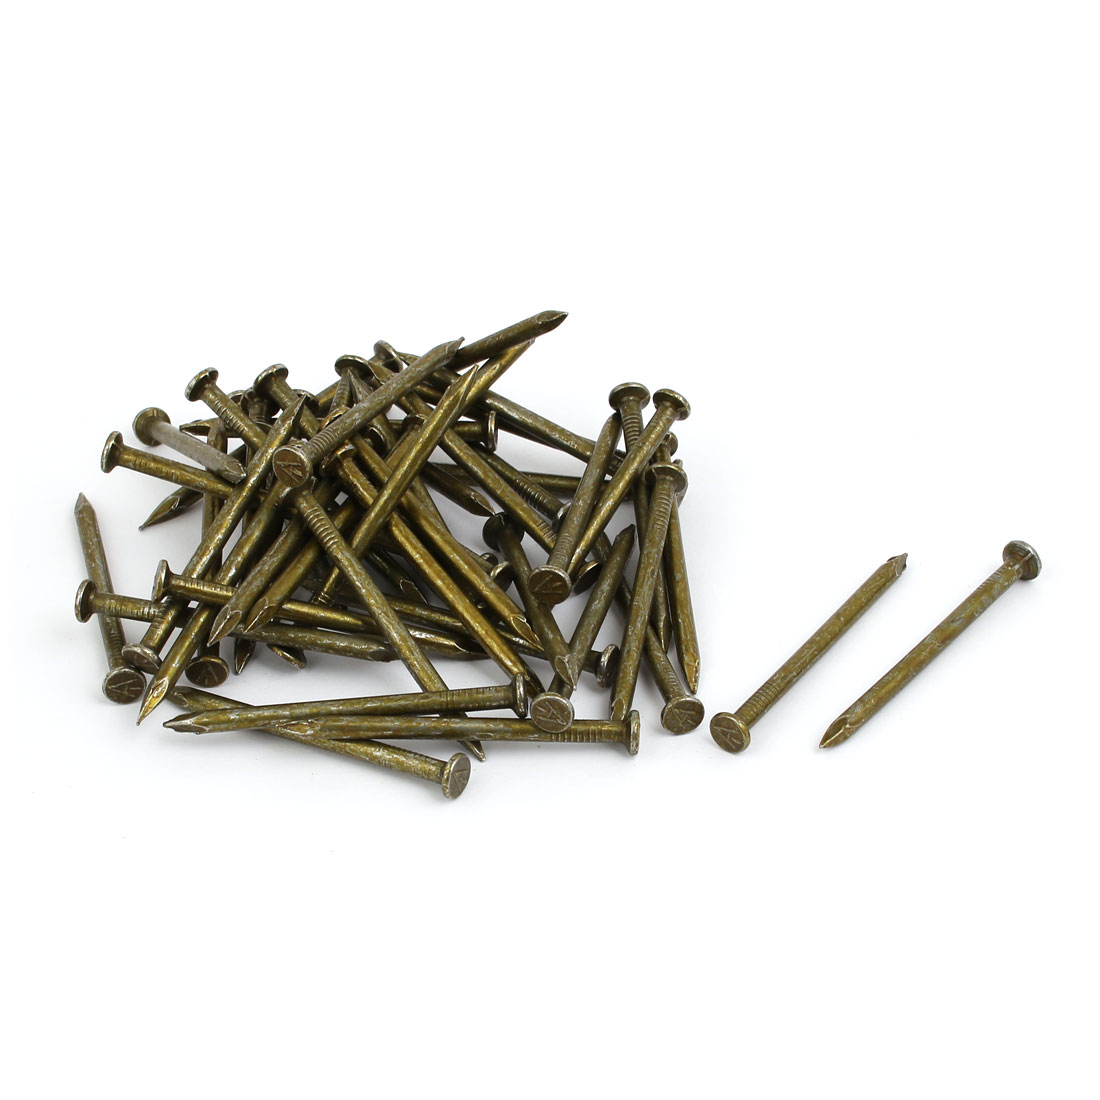 3.8mm Dia 60mm Length Carbon Steel Round Head Siding Wall Cement Nail 50pcs